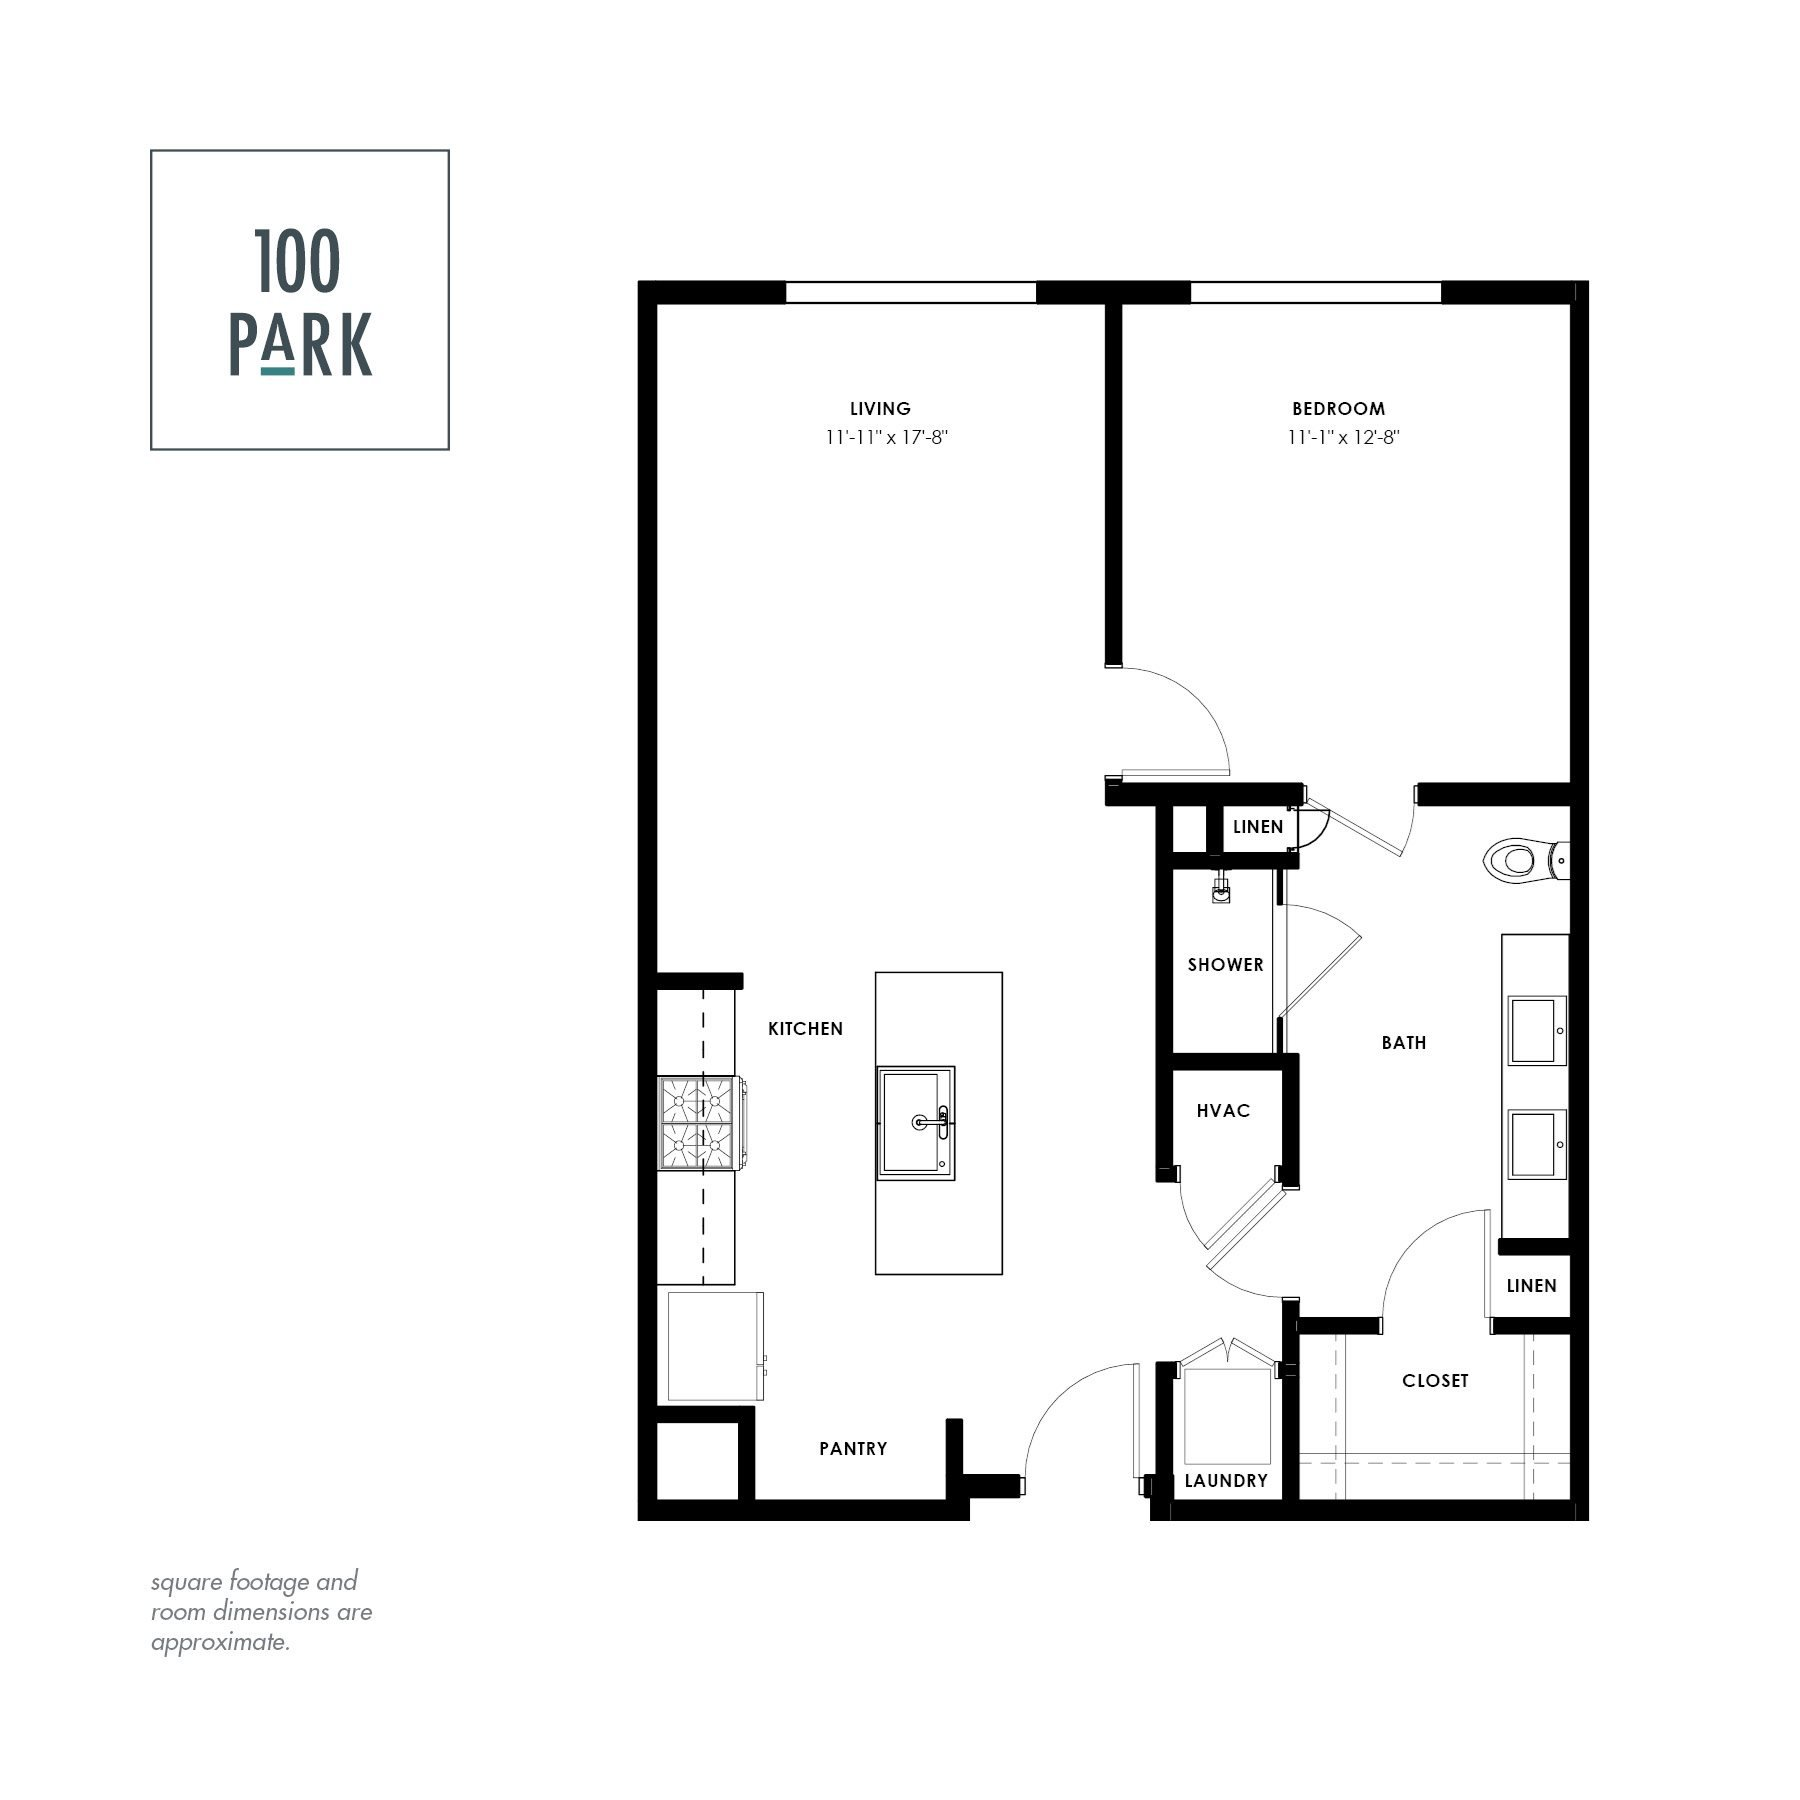 floor plans of 100 park in college station tx